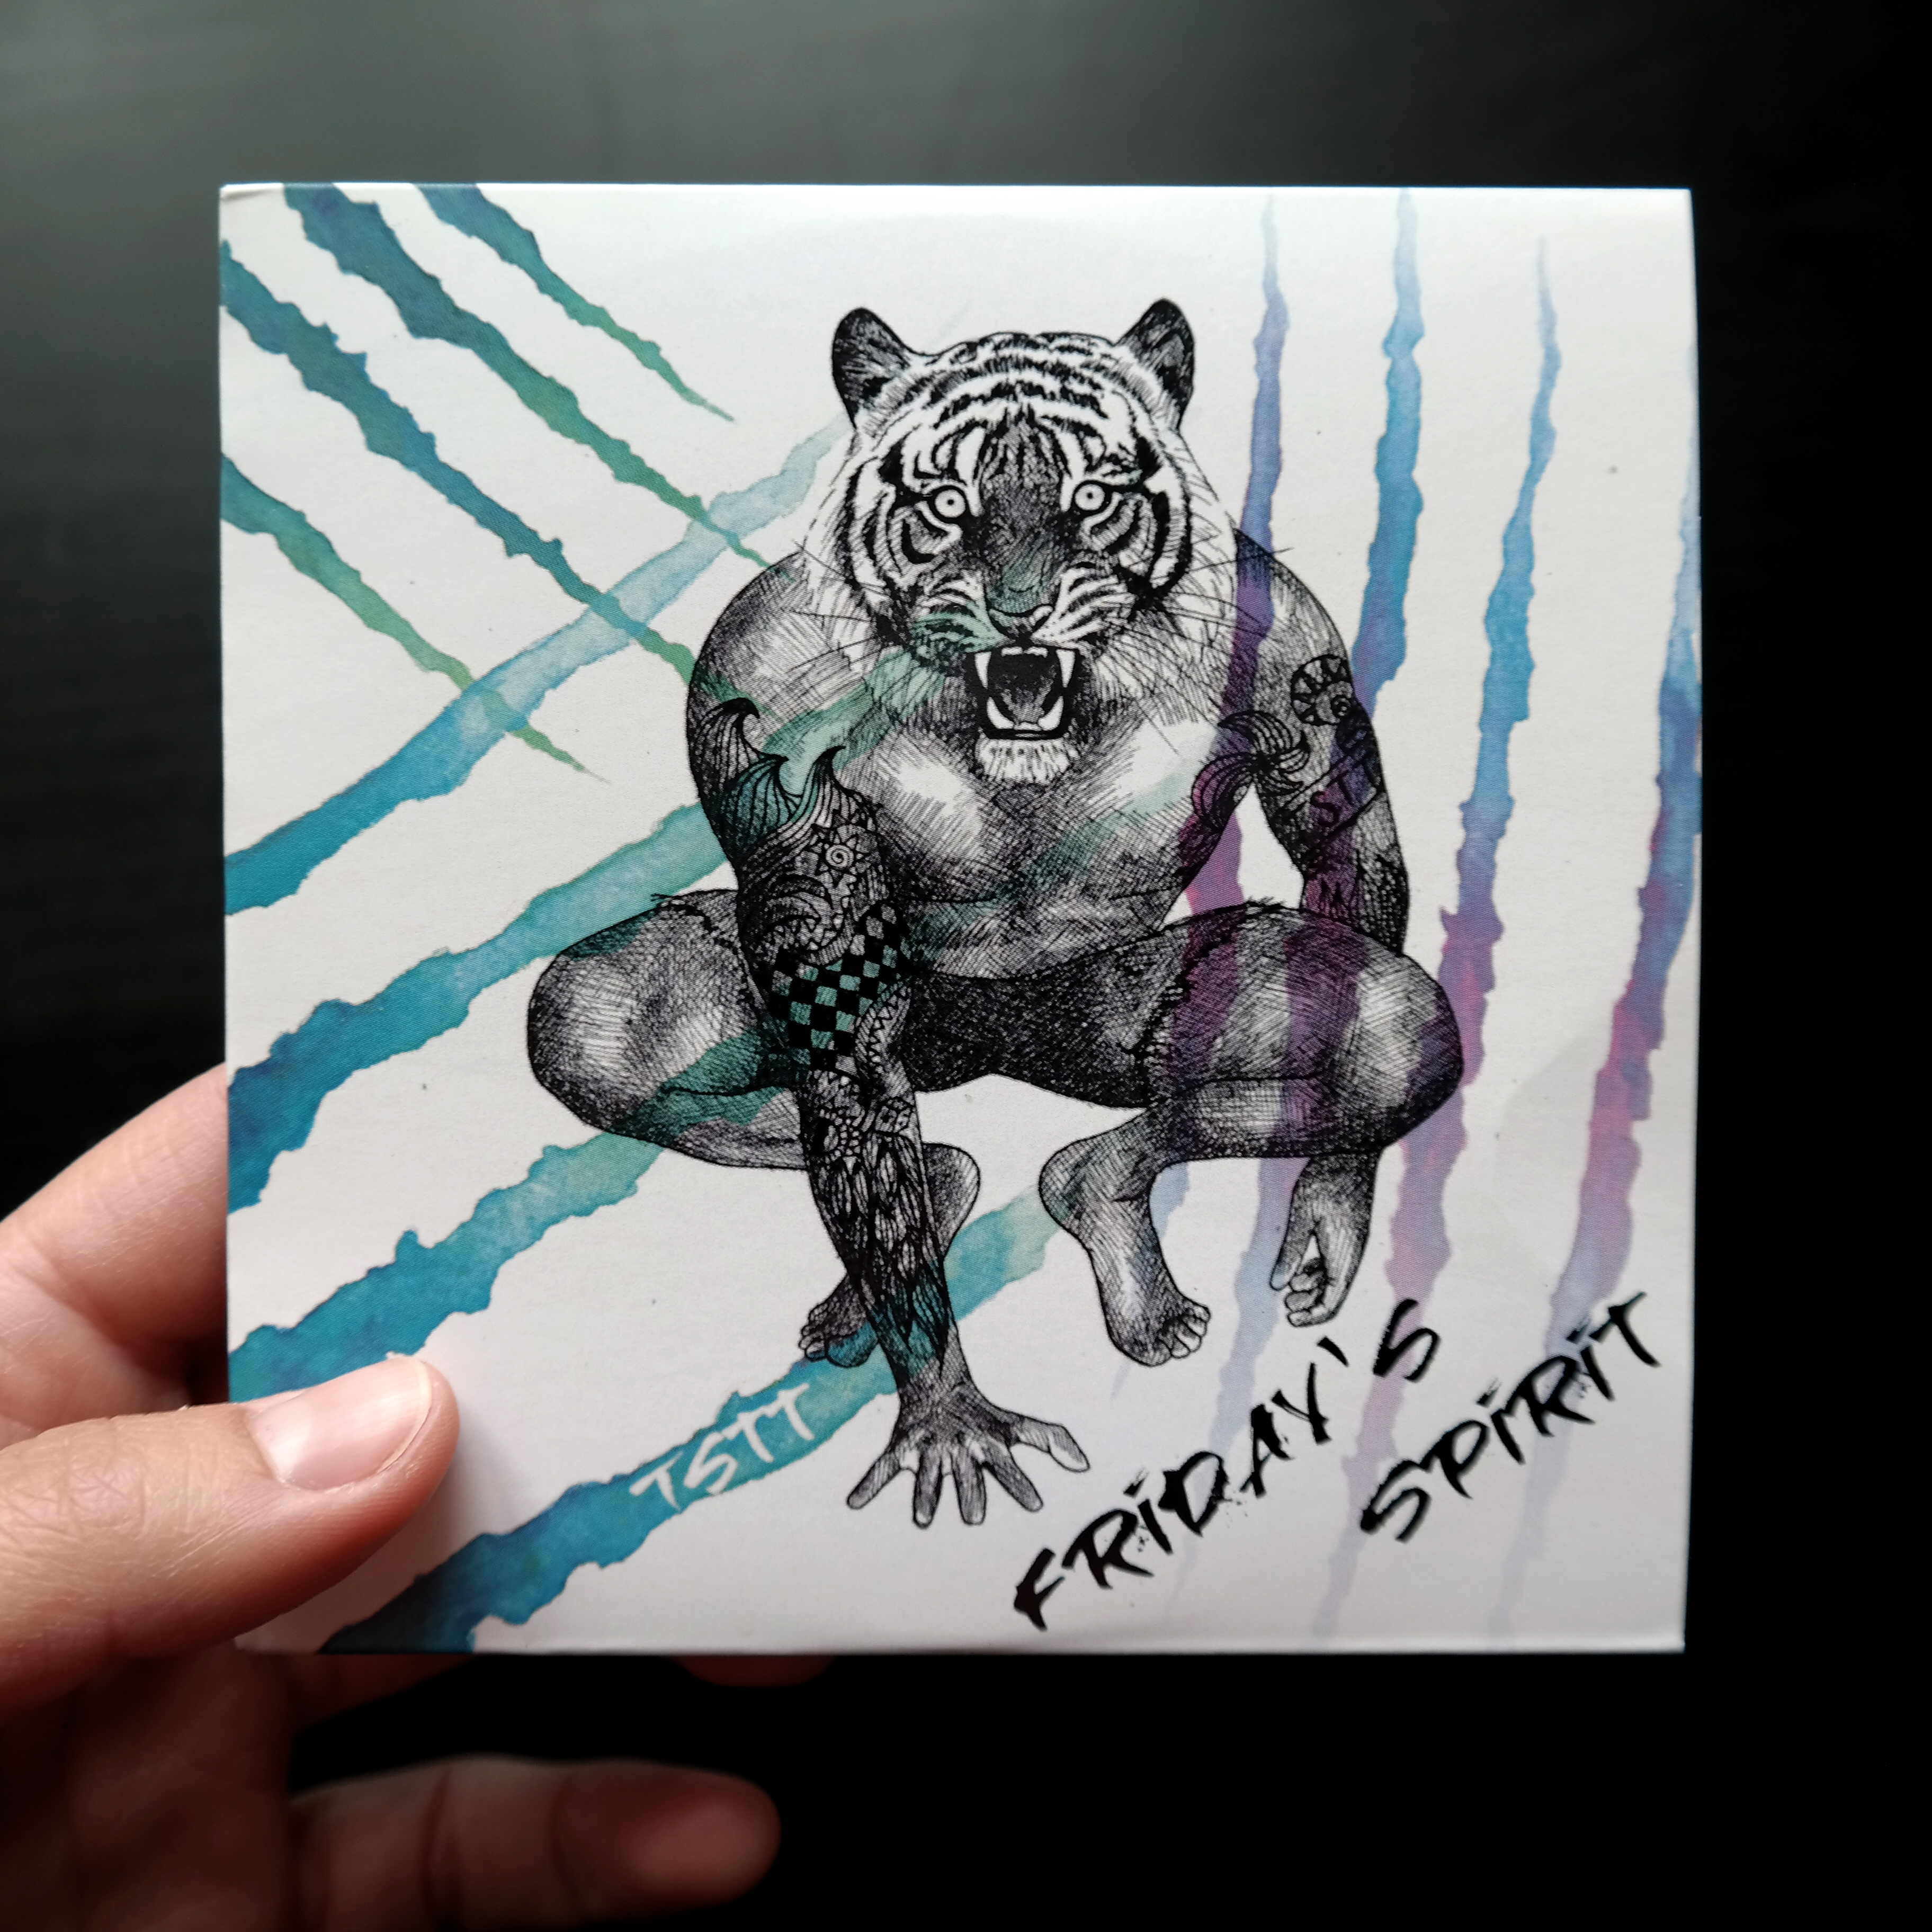 CD-Cover front